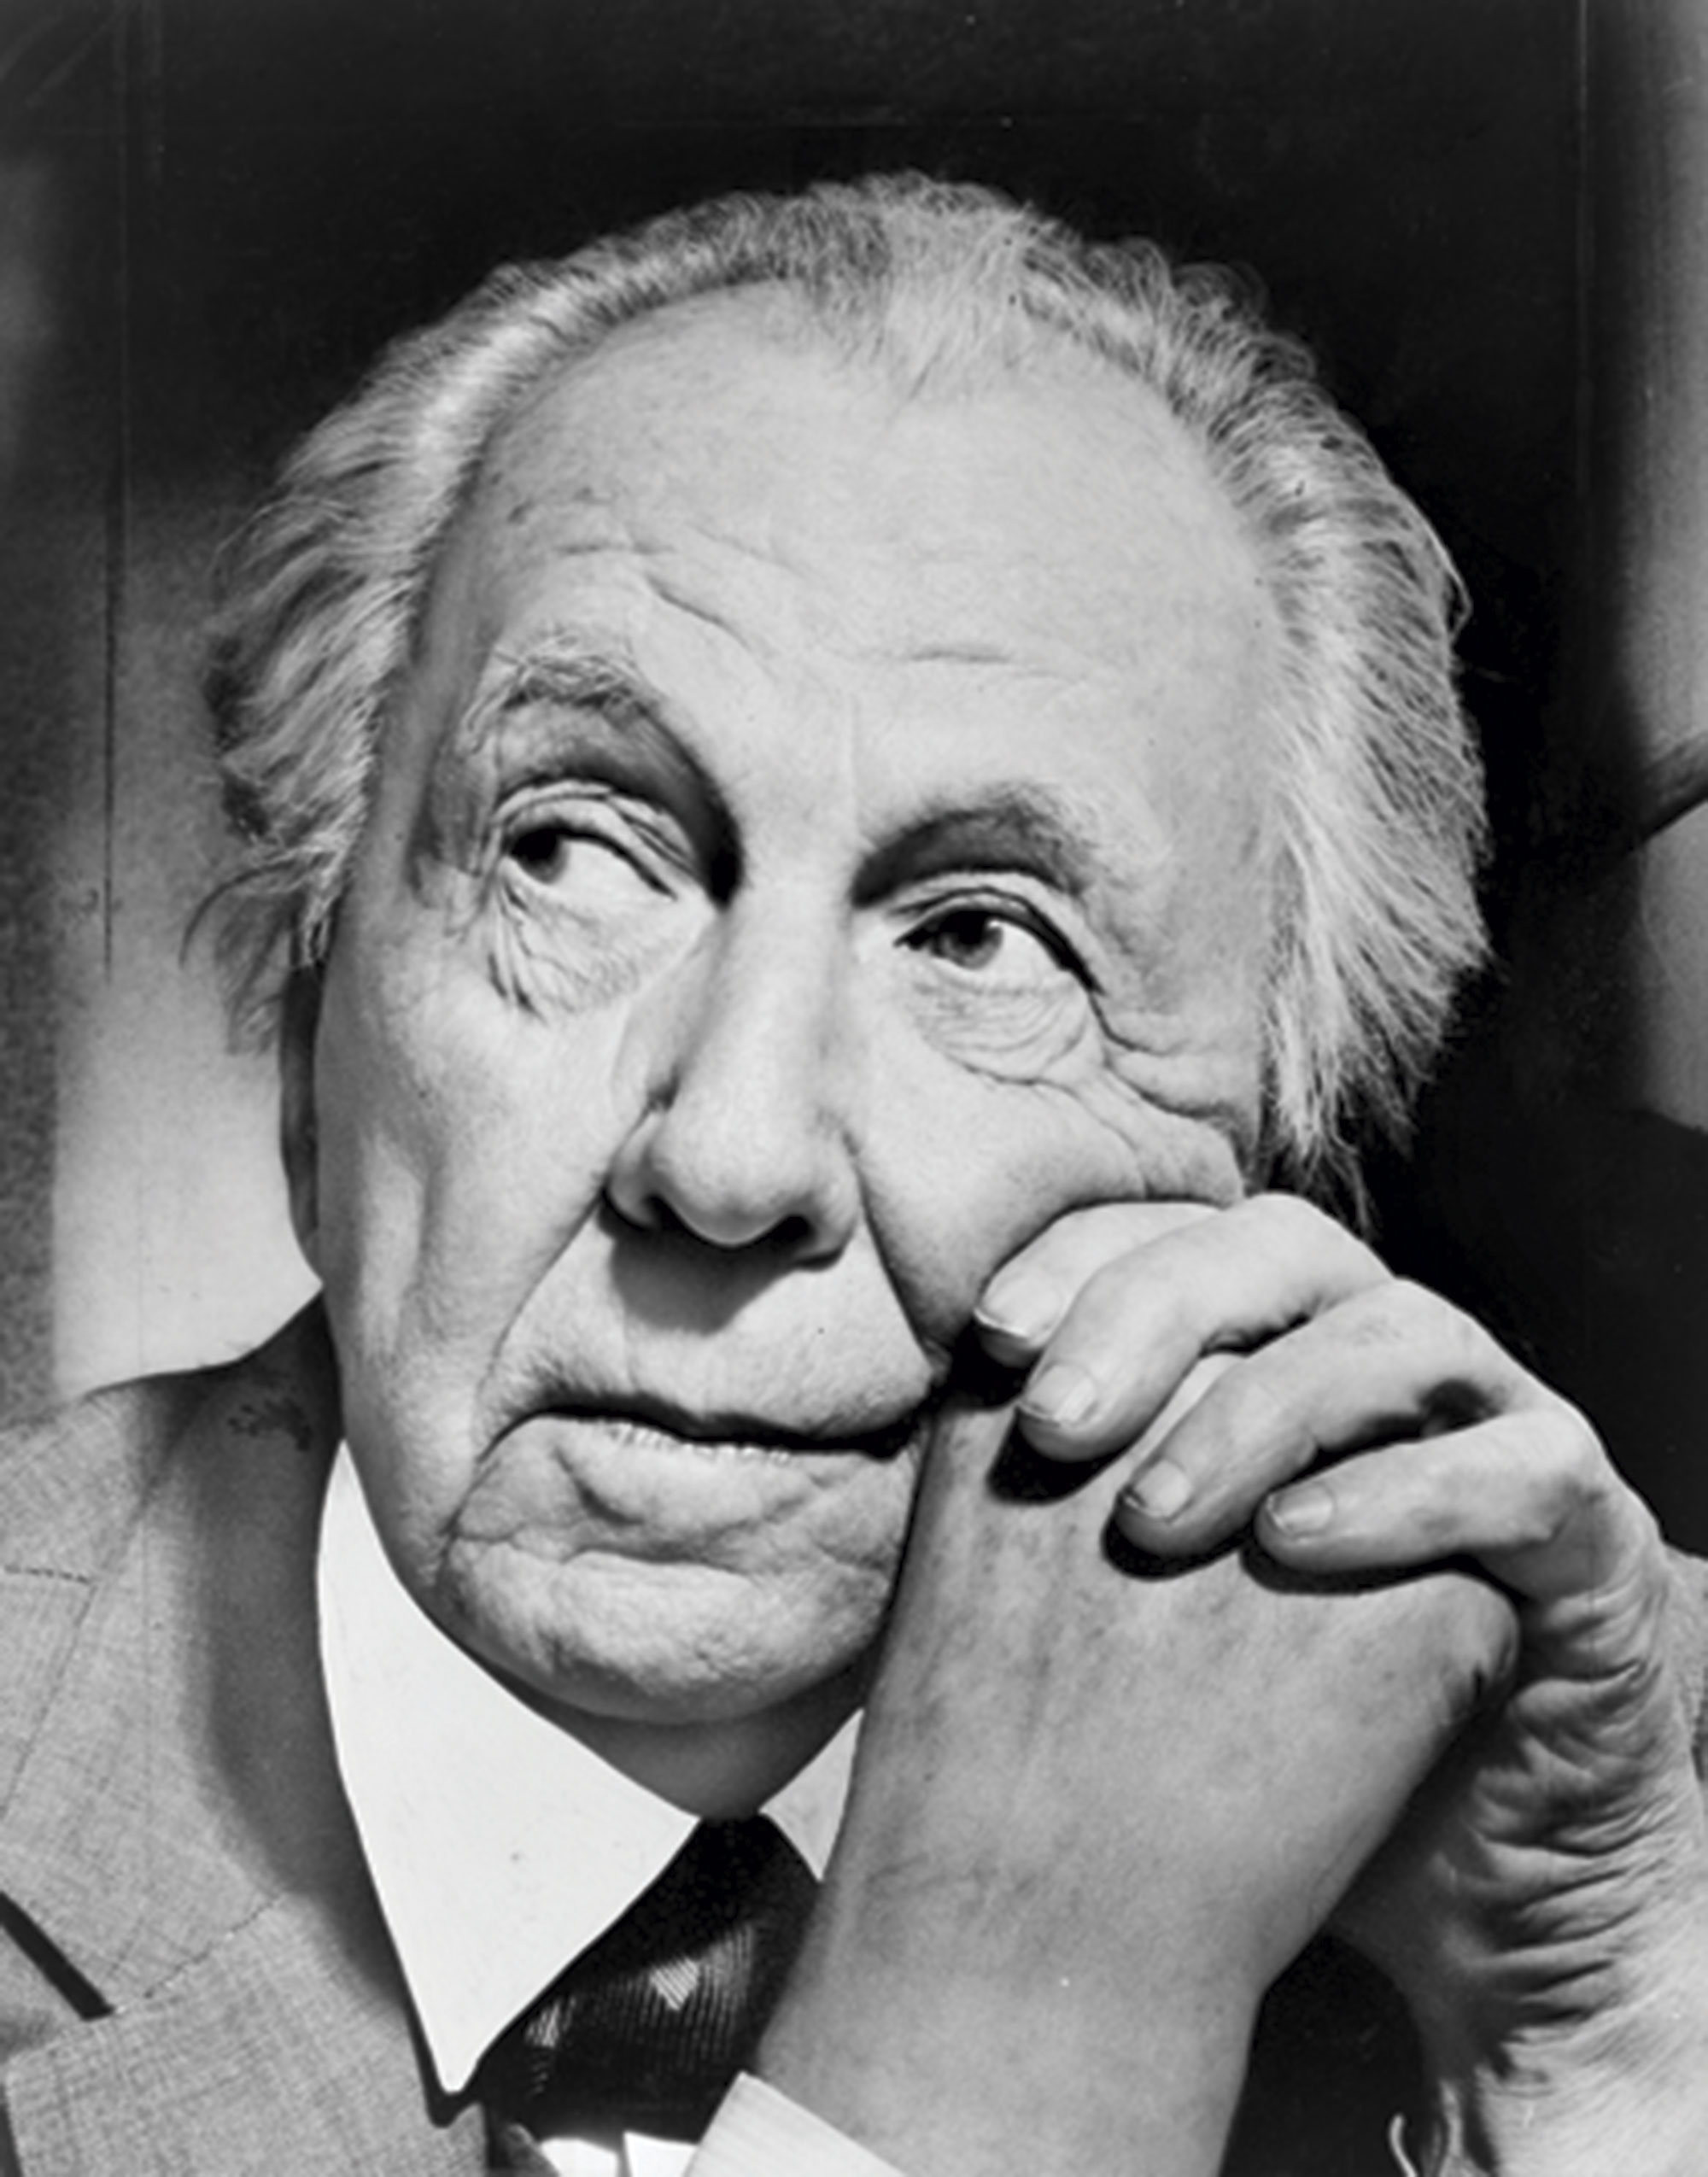 photos courtesy The Frank Lloyd Wright Foundation Archives (The Museum of Modern Art | Avery Architectural & Fine Arts Library, Columbia University, New York). All rights reserved; Wikimedia Commons